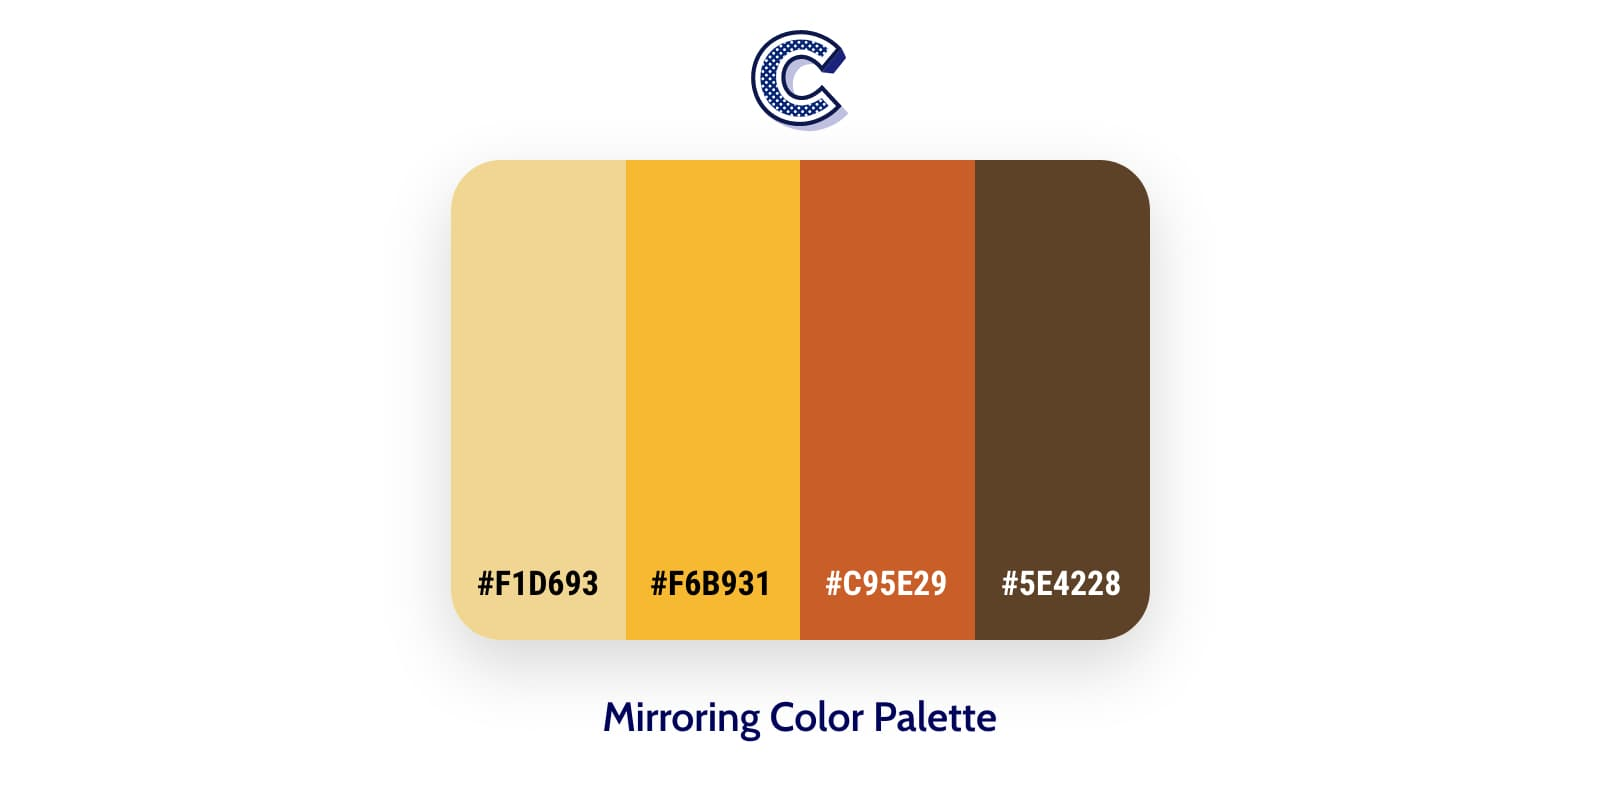 the featured image of mirroring color palette